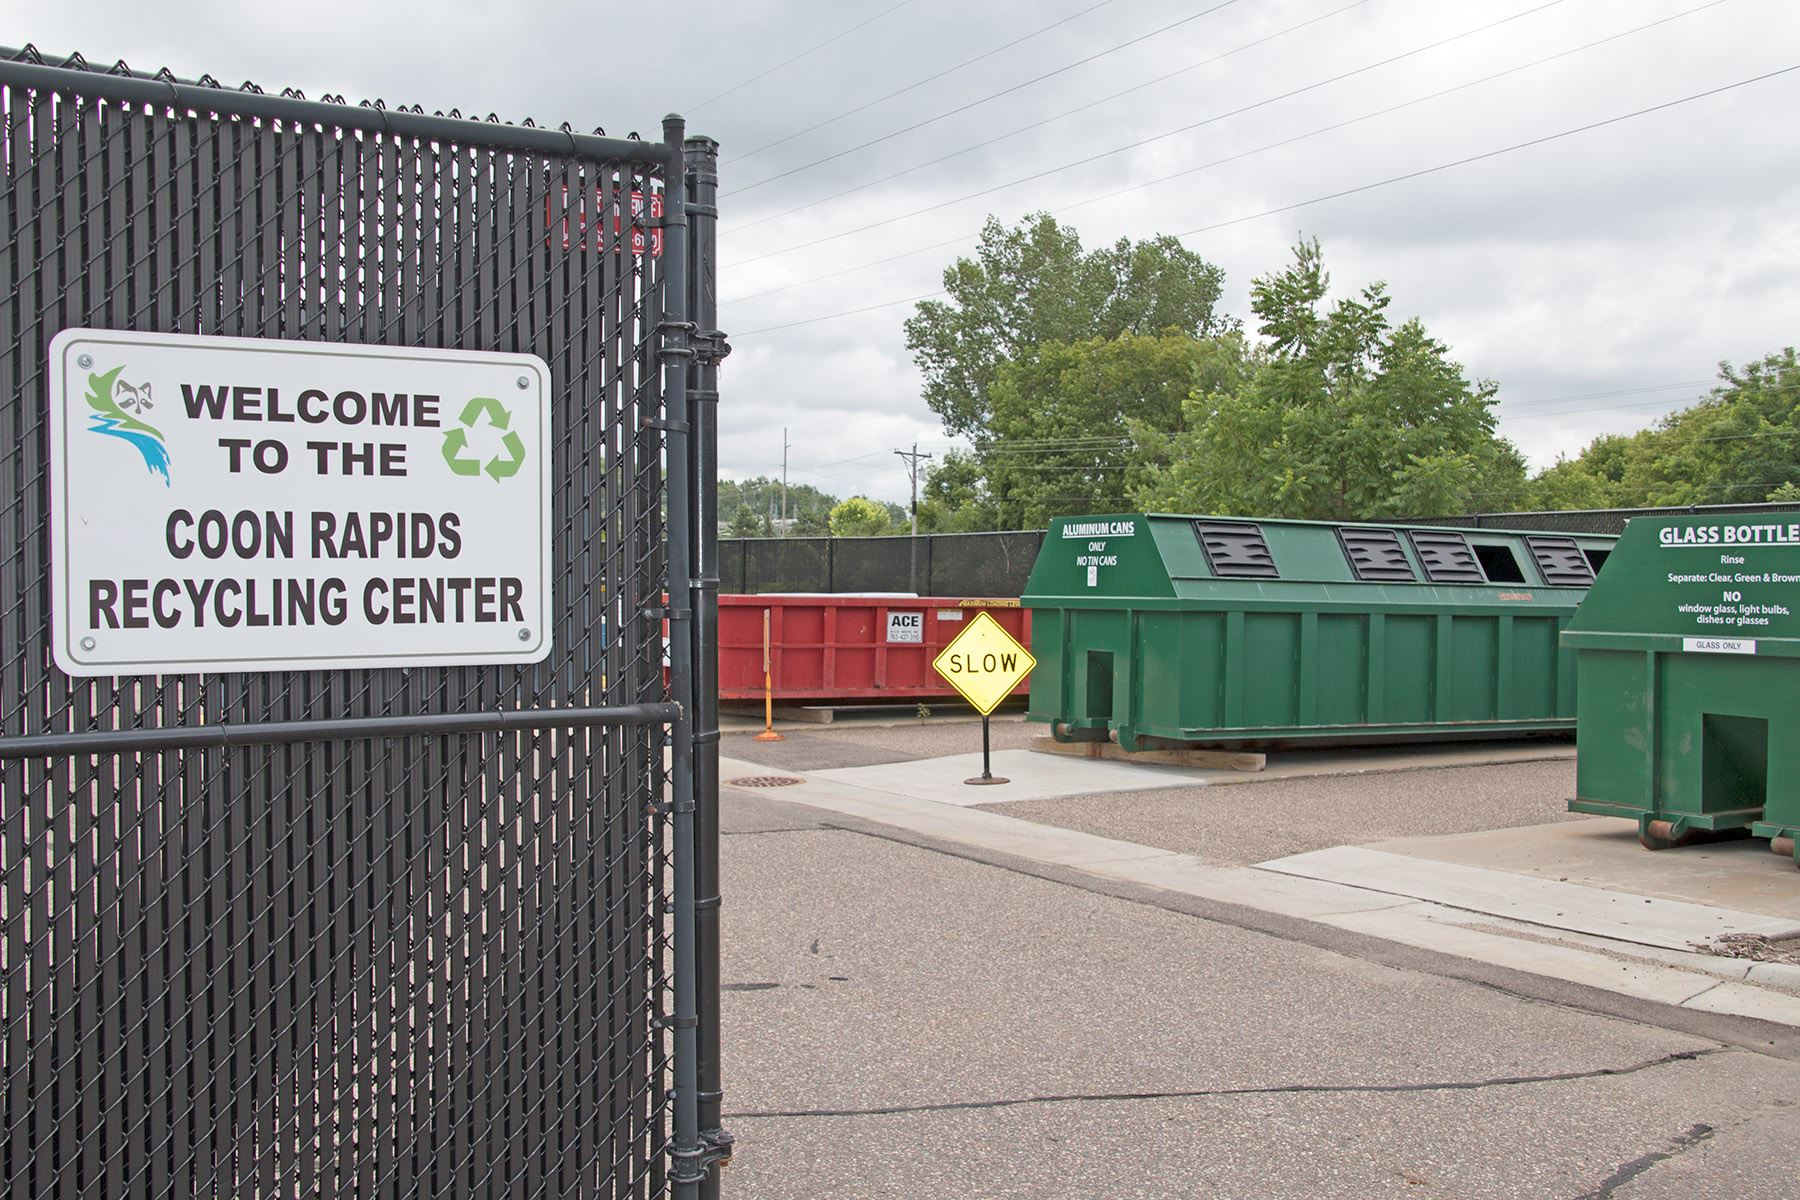 Coon Rapids Recycling Center and Welcome Sign